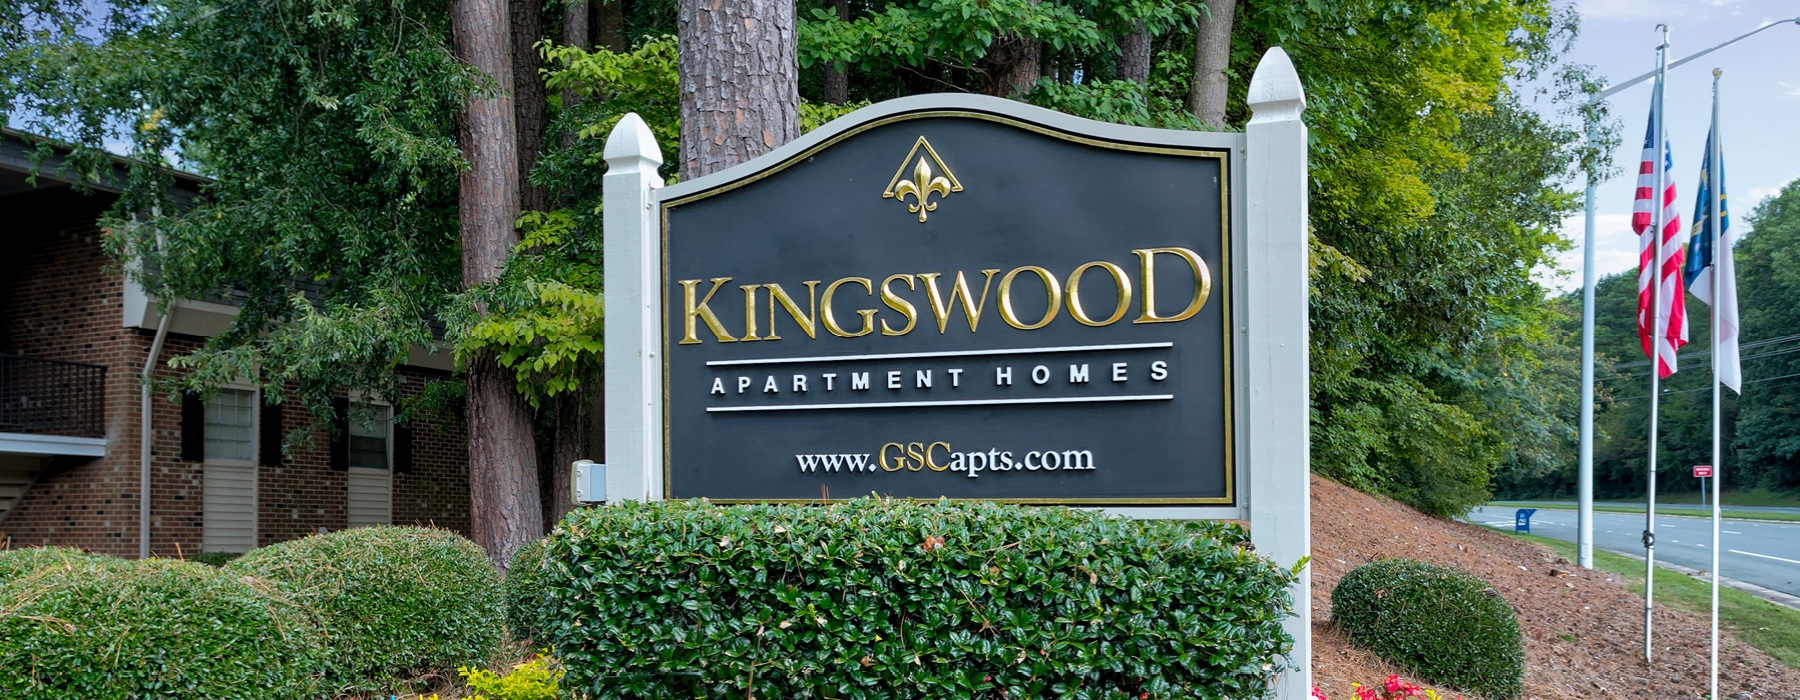 kingswood sign at property entrance along the street